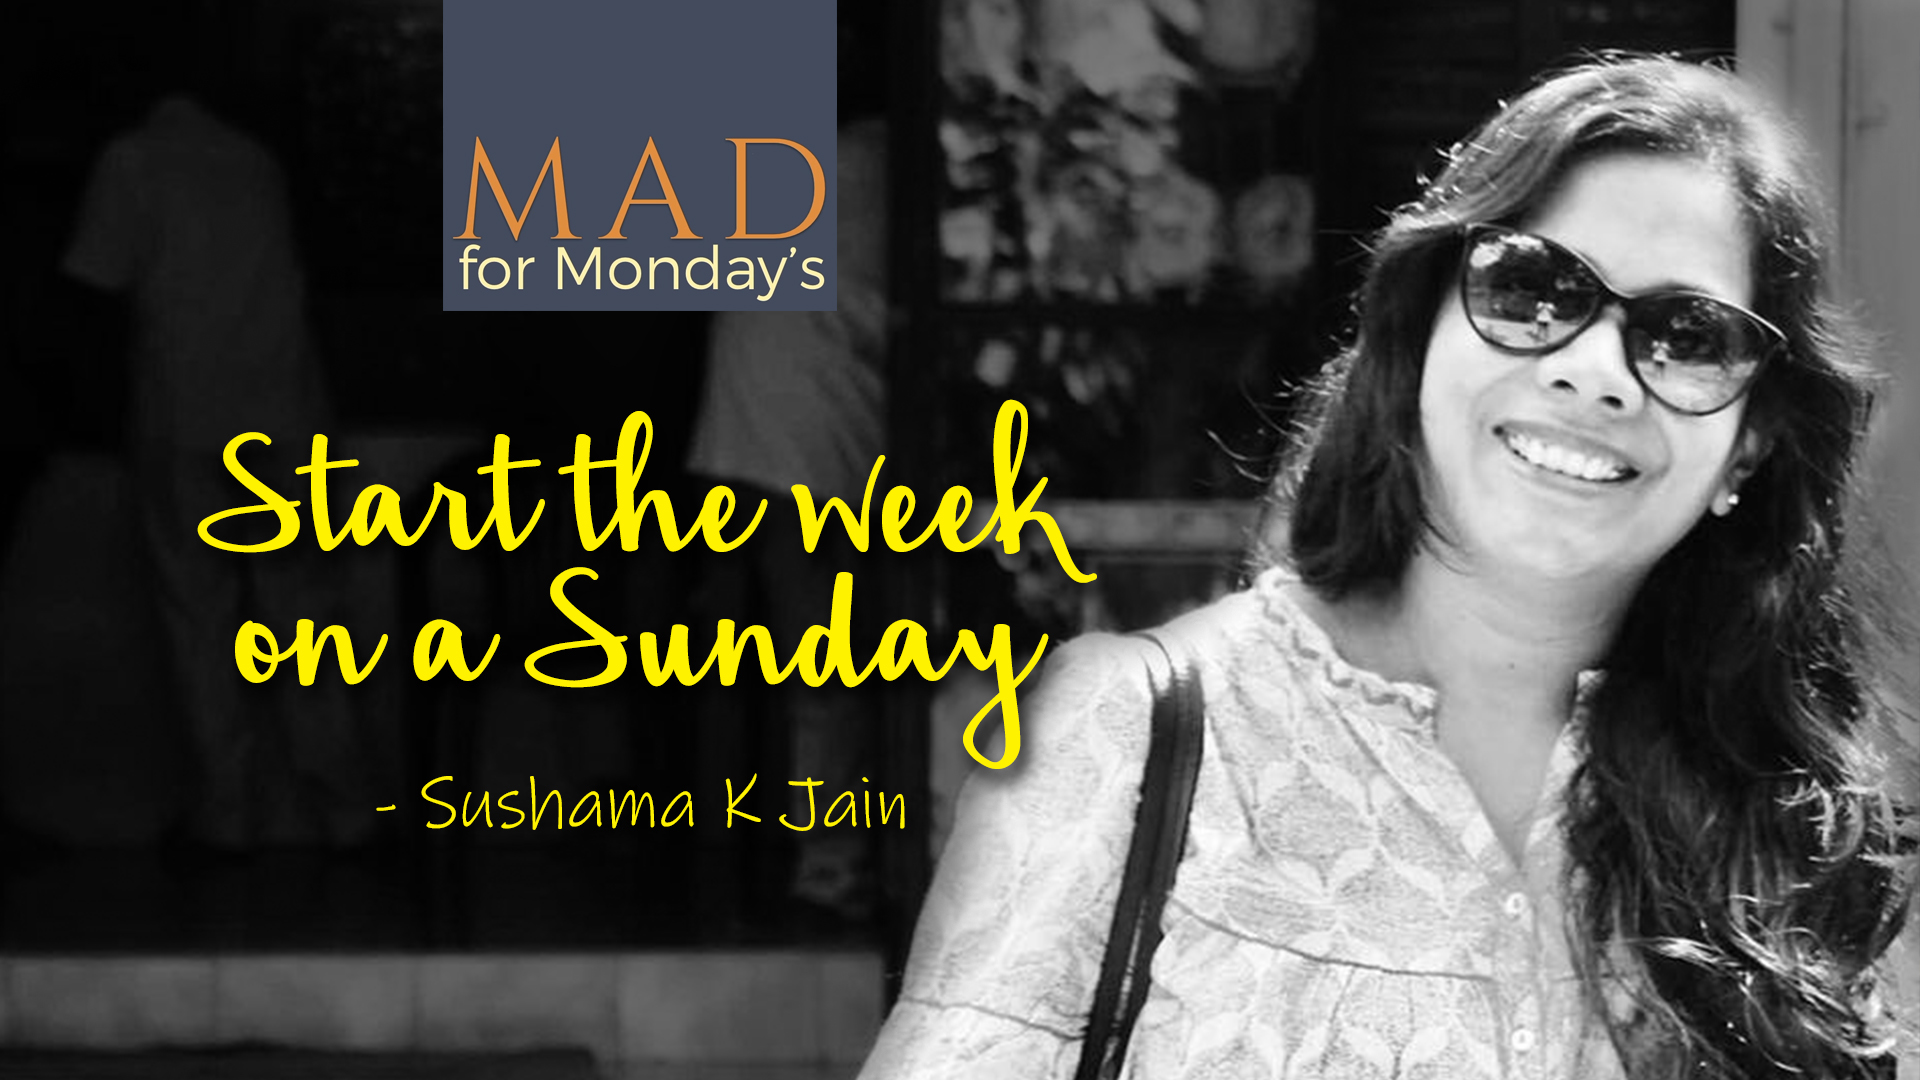 M.A.D. for Mondays – Start the week on a Sunday